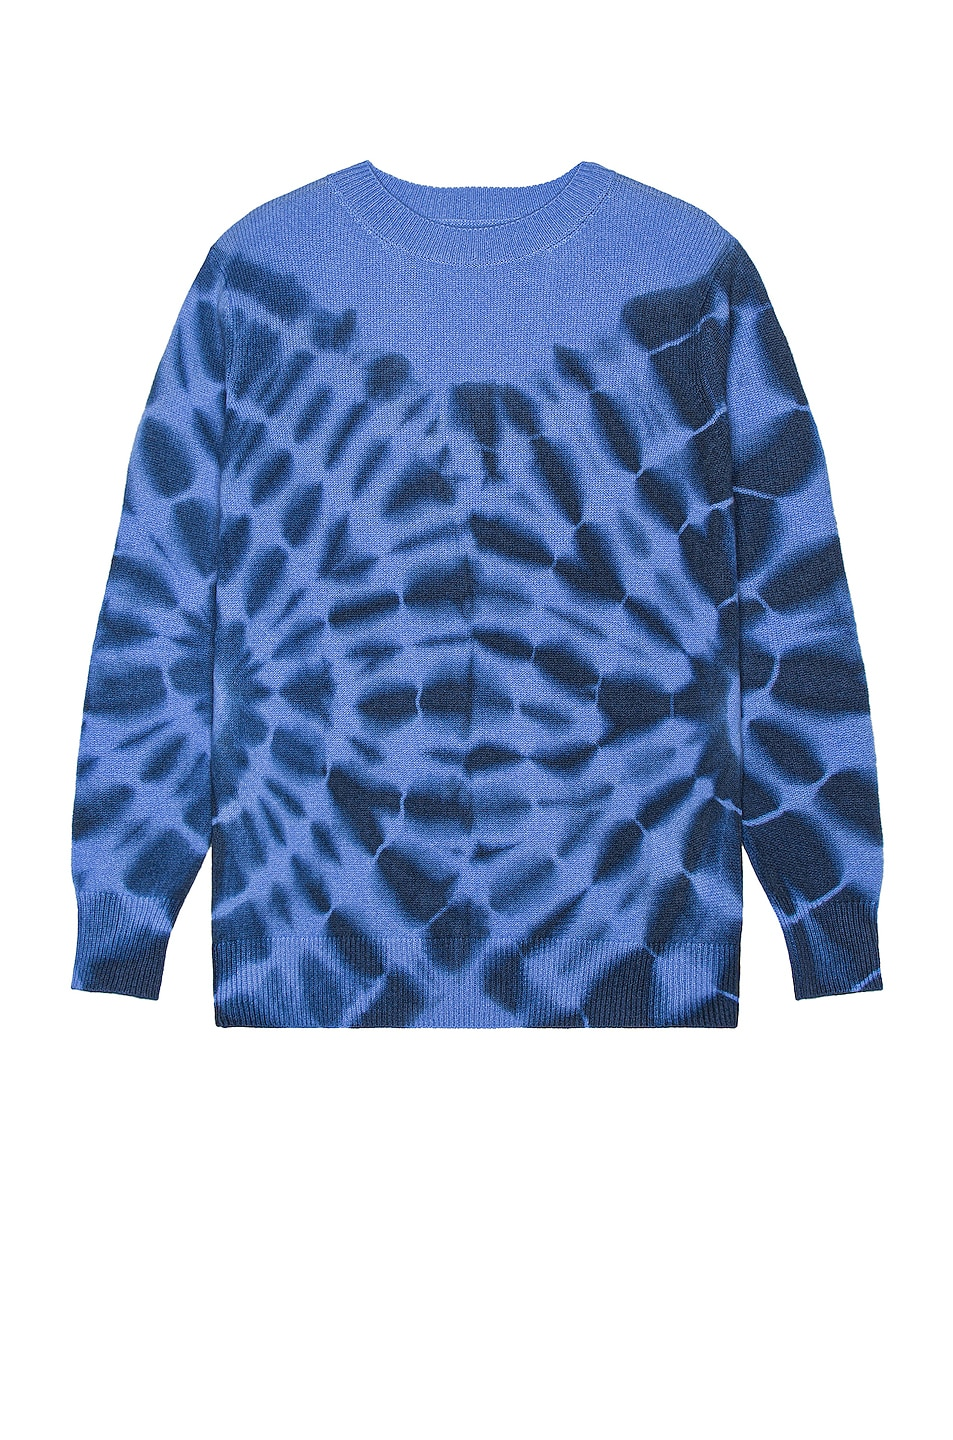 Image 1 of The Elder Statesman Ink Blot Tranquility Crew Sweater in Periwinkle & Navy